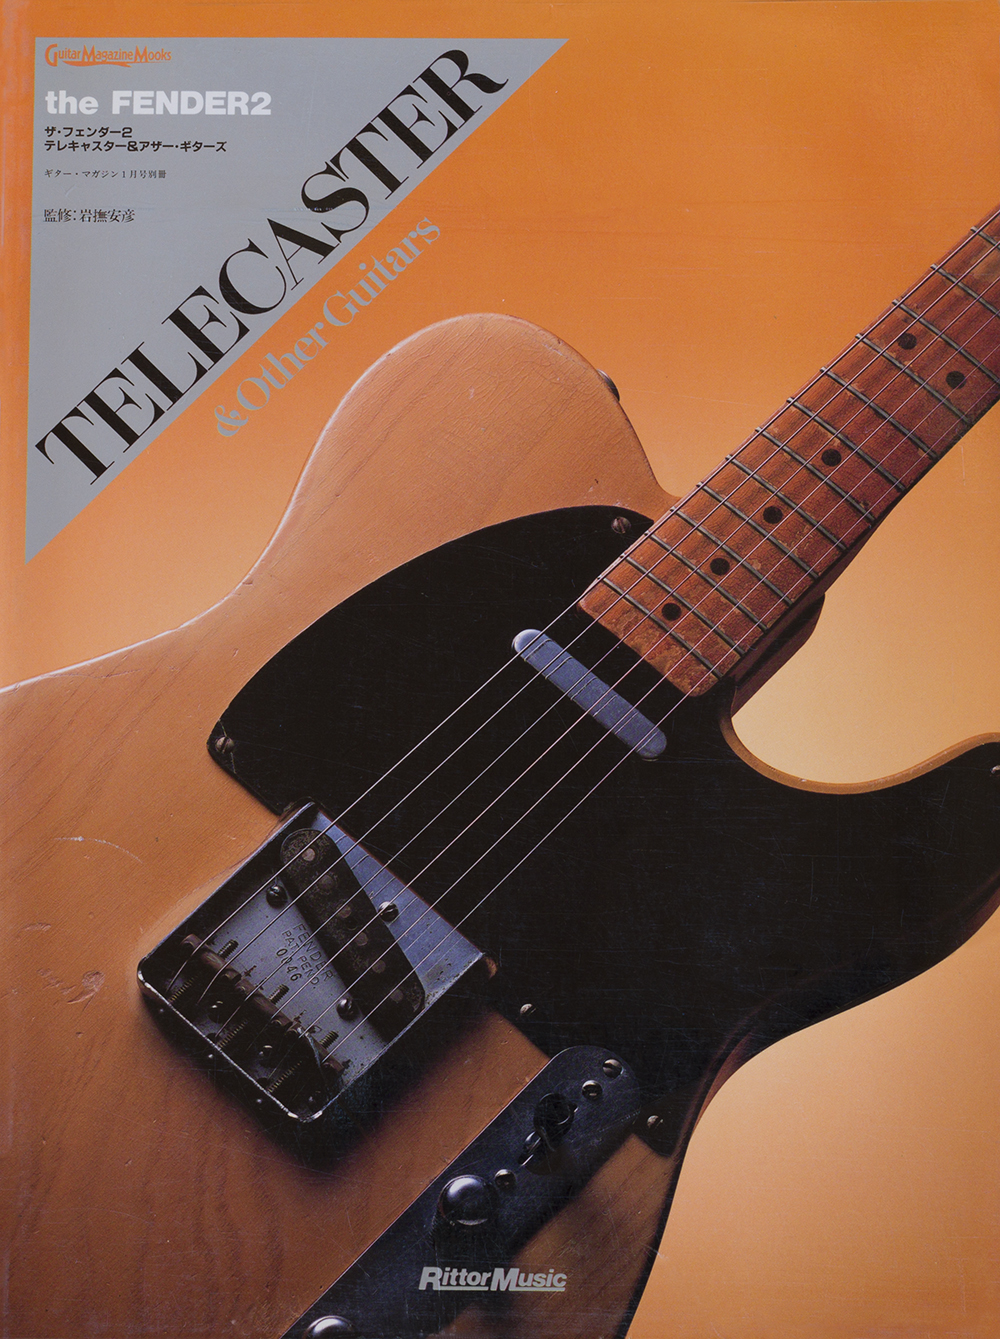 telecaster & other guitars, by rittor, japan